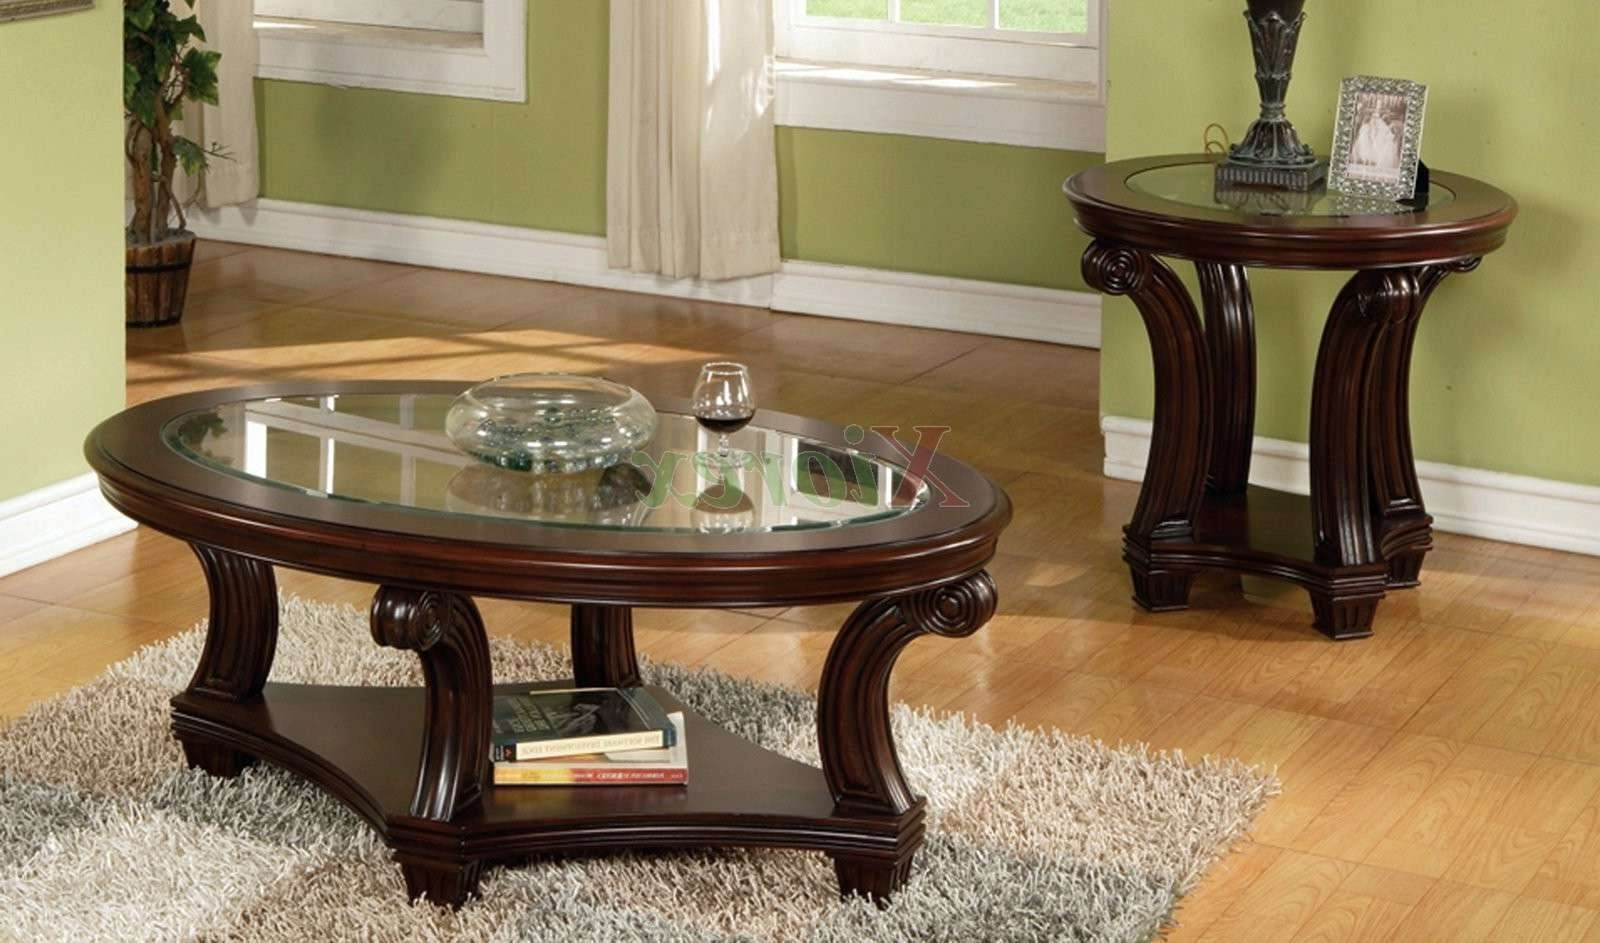 Rustic Wood And Glass Coffee Table 20 Ideas Of Round Wood And Glass Coffee Tables